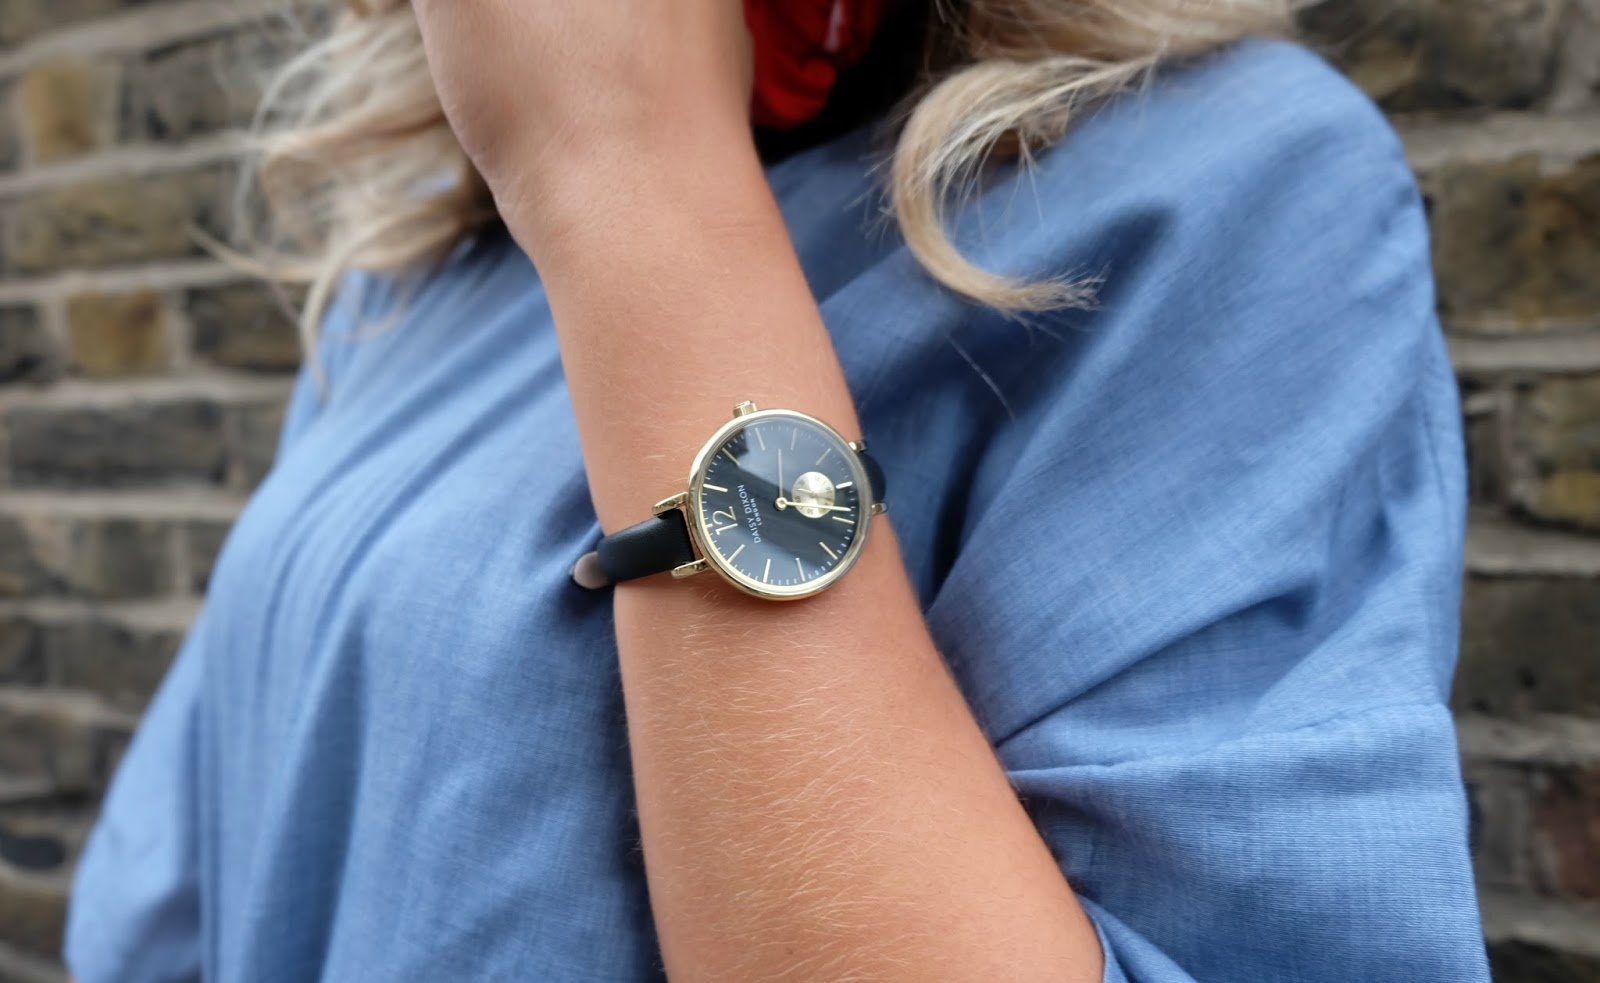 Sleek Daisy Dixon watch at LFW Aw16